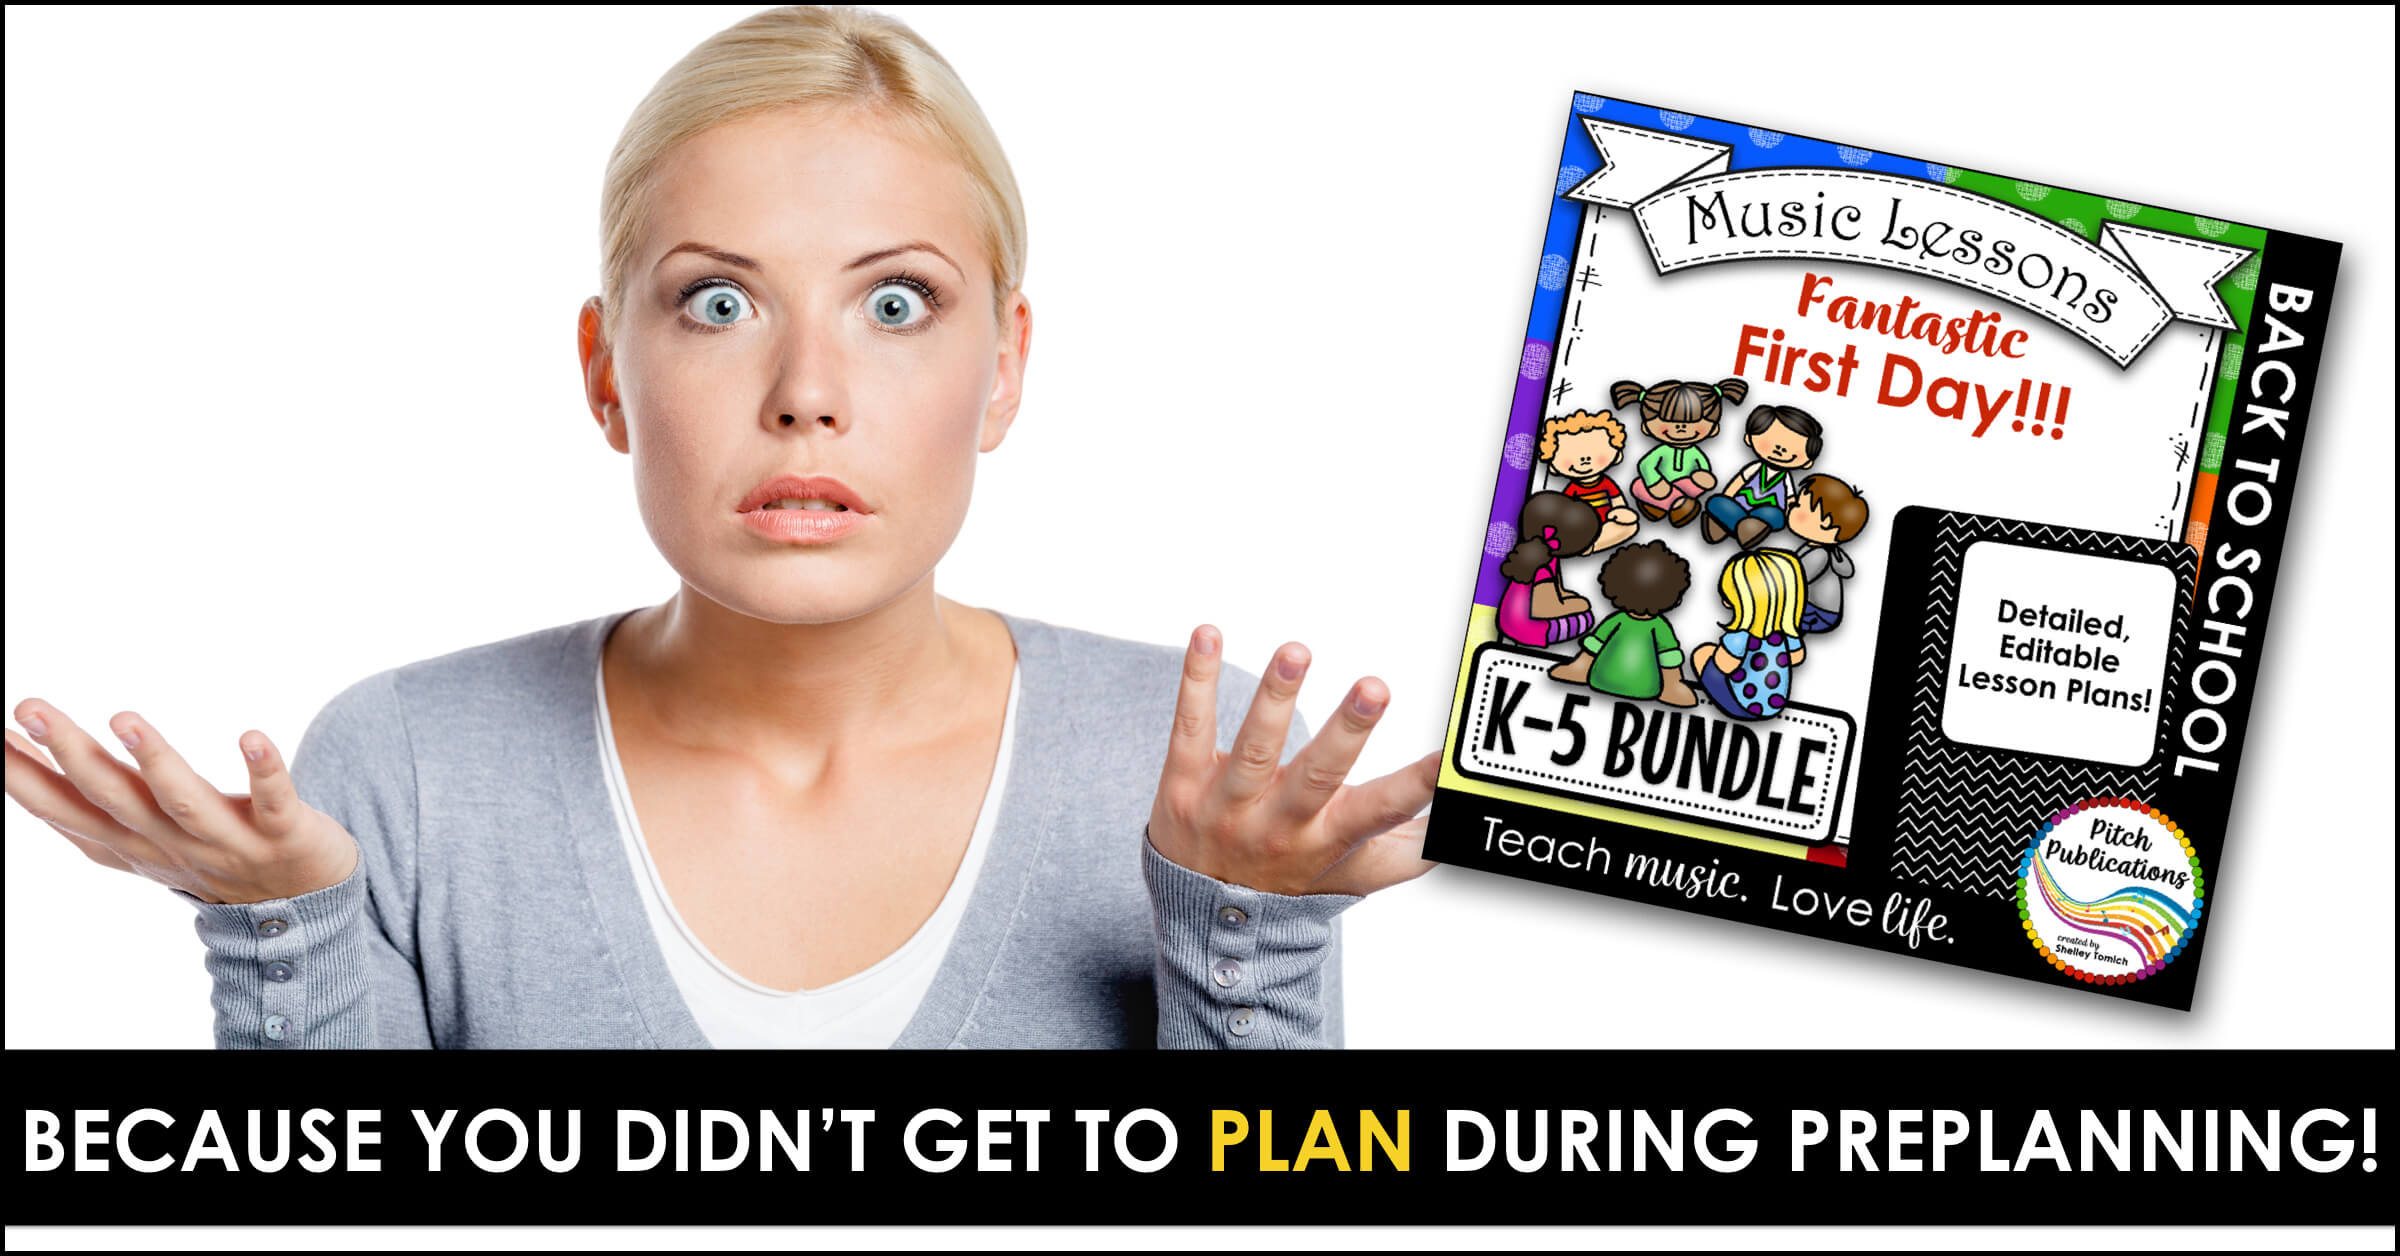 Are you struggling what to do the VERY FIRST DAY of music class? It can be scary! No worries! I got you covered! Check out this blog post to get some amazing ideas for your class! #pitchpublications just now